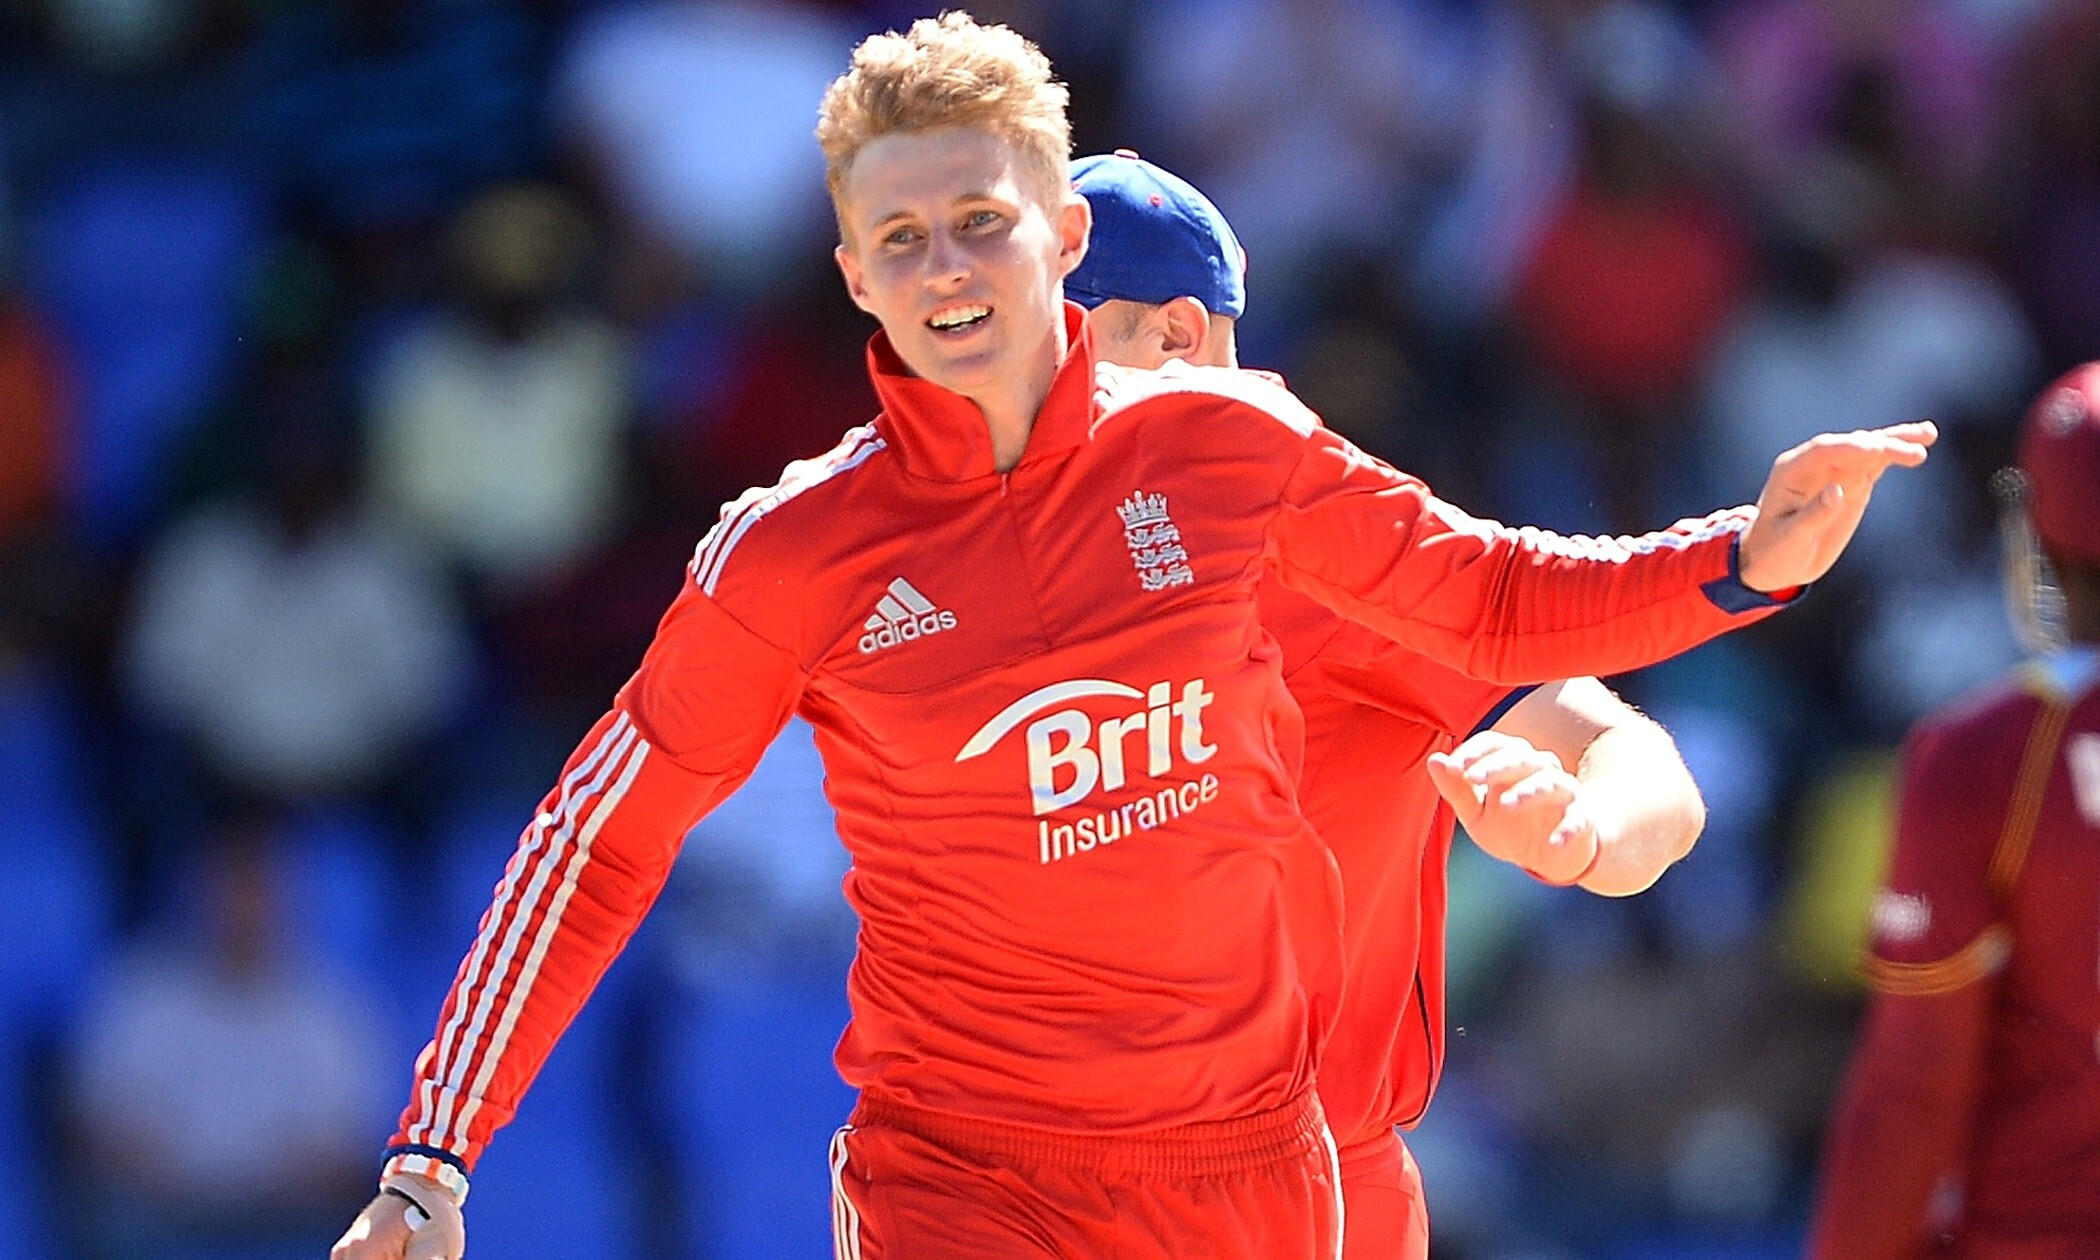 Joe Root Cricketer Of England In T20 Worldcup Hd Wallpapers Hd